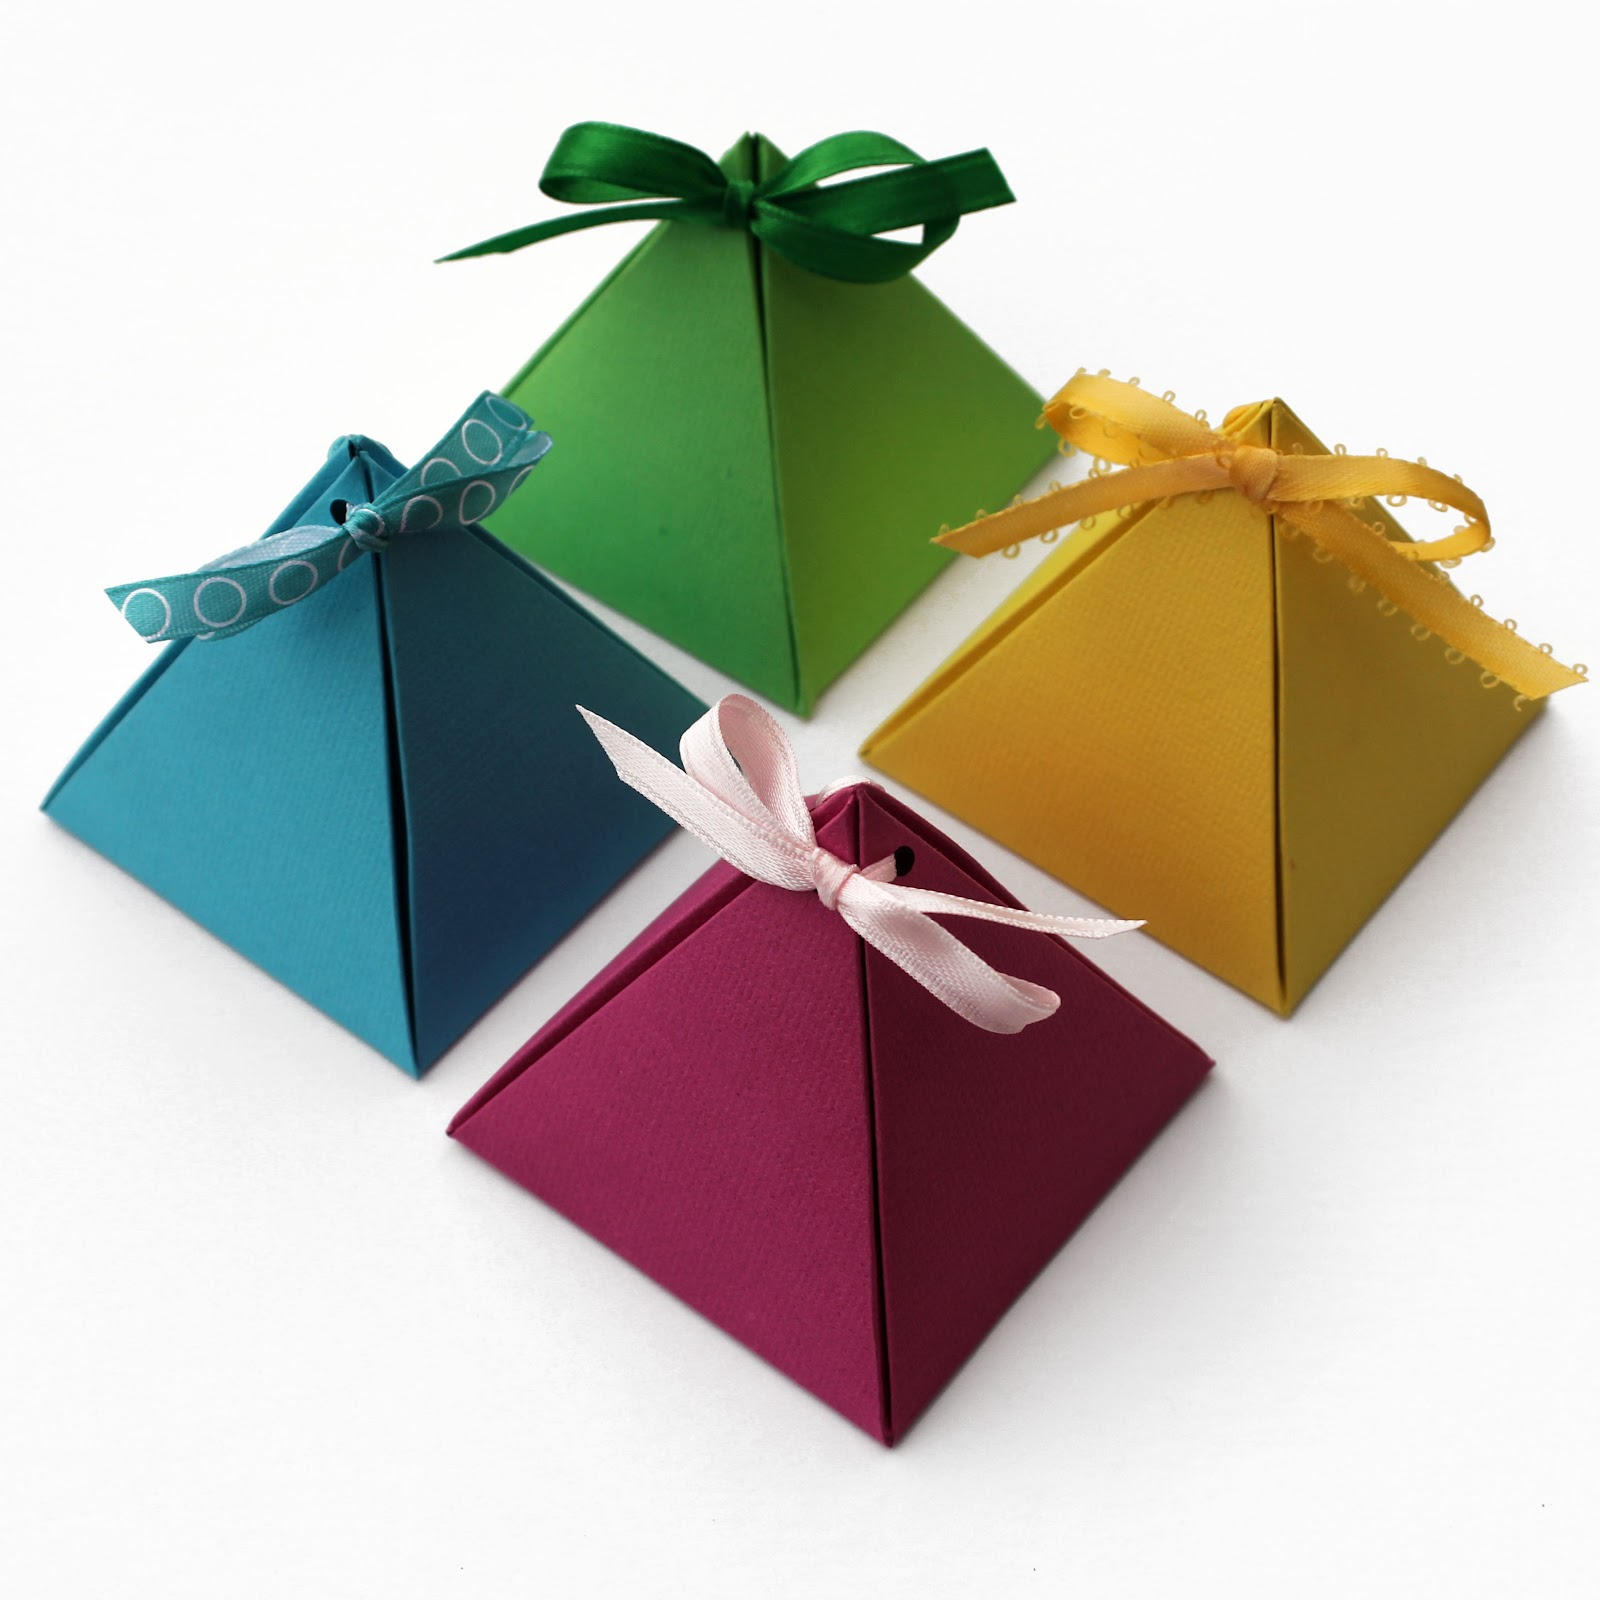 If You Like These Paper Pyramid Gift Boxes, Check Out This Collection Of 15  Free Paper Gift Box Templates For More Fun Ideas.